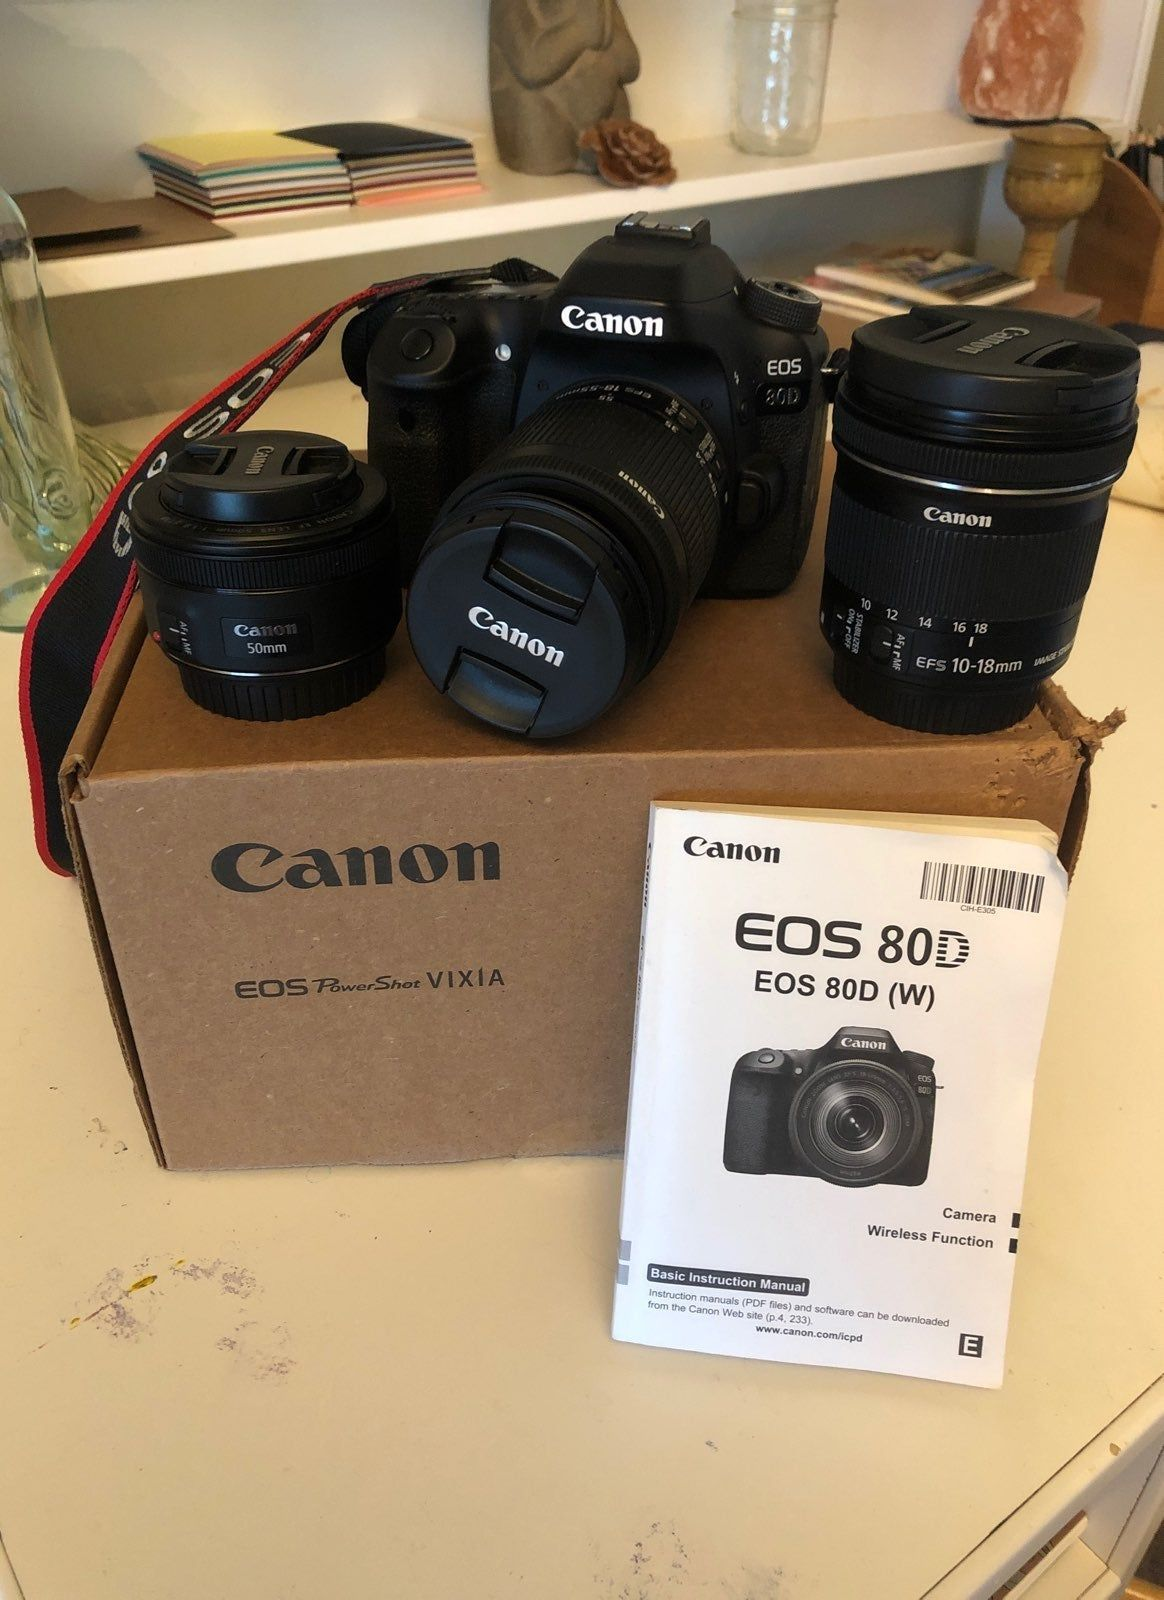 Mint Condition Lightly Used Little To None Wear And Tear On Body Canon 80d 18 55mm 10 18 M Digital Camera Photography Canon Camera Photography Canon Camera